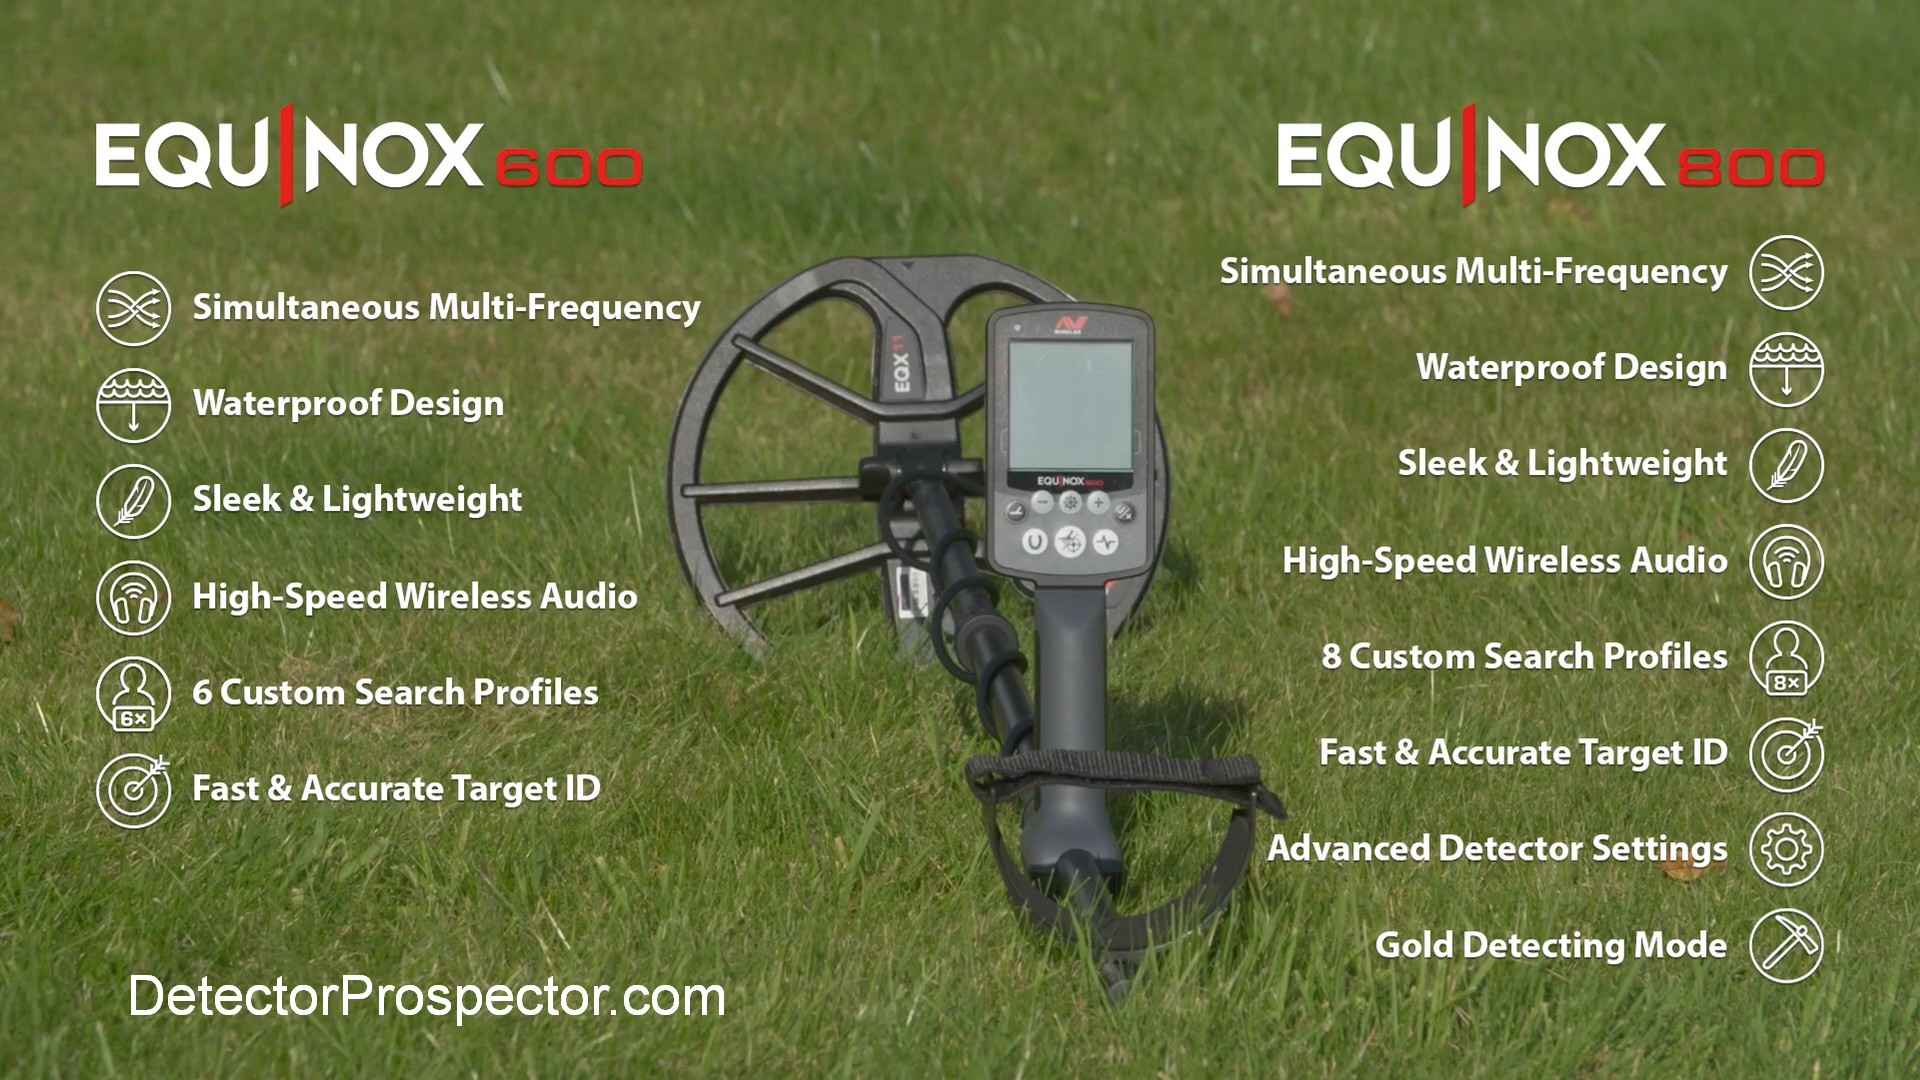 minelab-equinox-600-800-compared.jpg